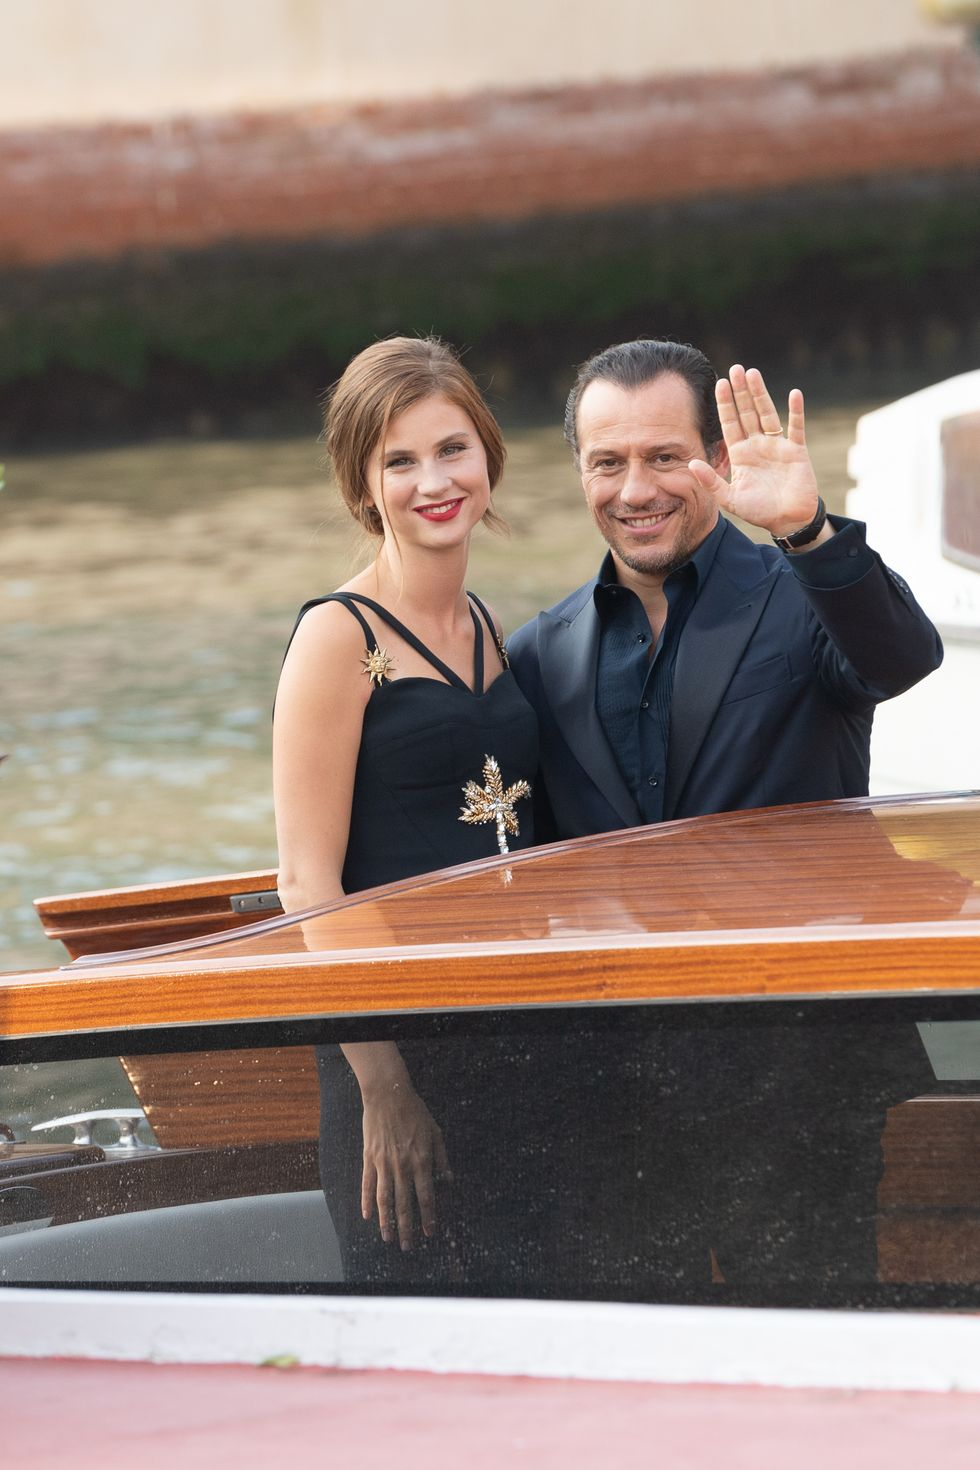 Beautiful, stylish and very in love: Stefano and Bianca complicate the contest on the most beautiful couples of Venice 2019, which already seemed to have its winners…